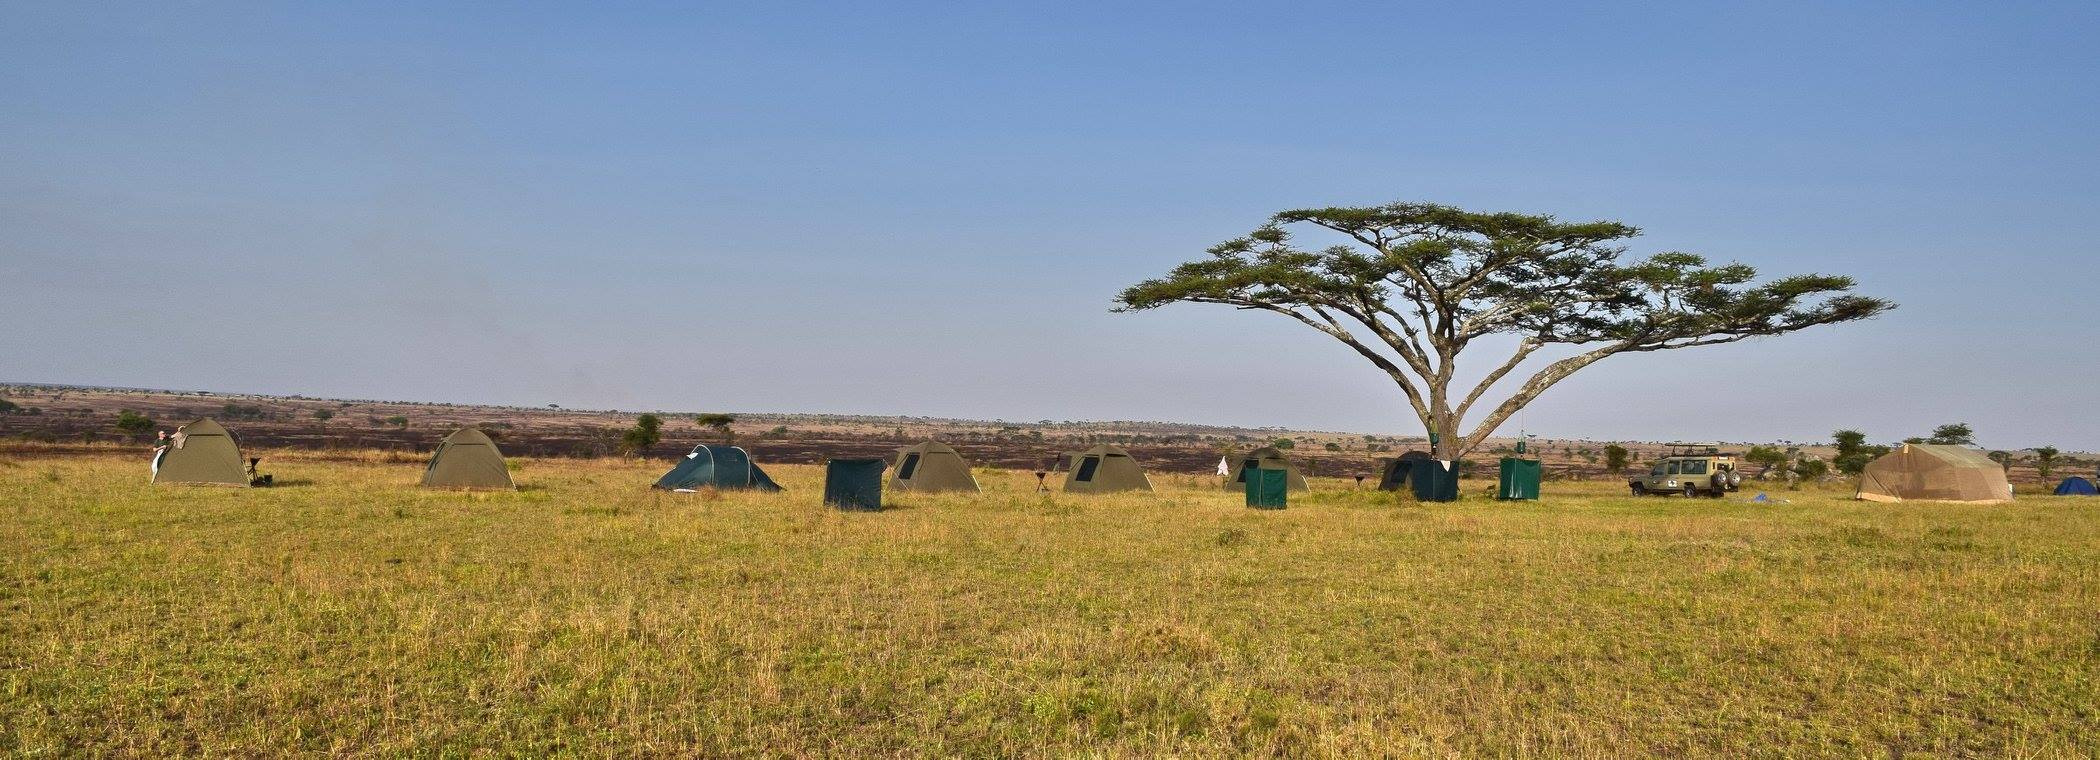 """Mobile Safari (Different than a permanent tent camp experience) -- with  """"short drop"""" toilets and portable hot water shower arrangements."""